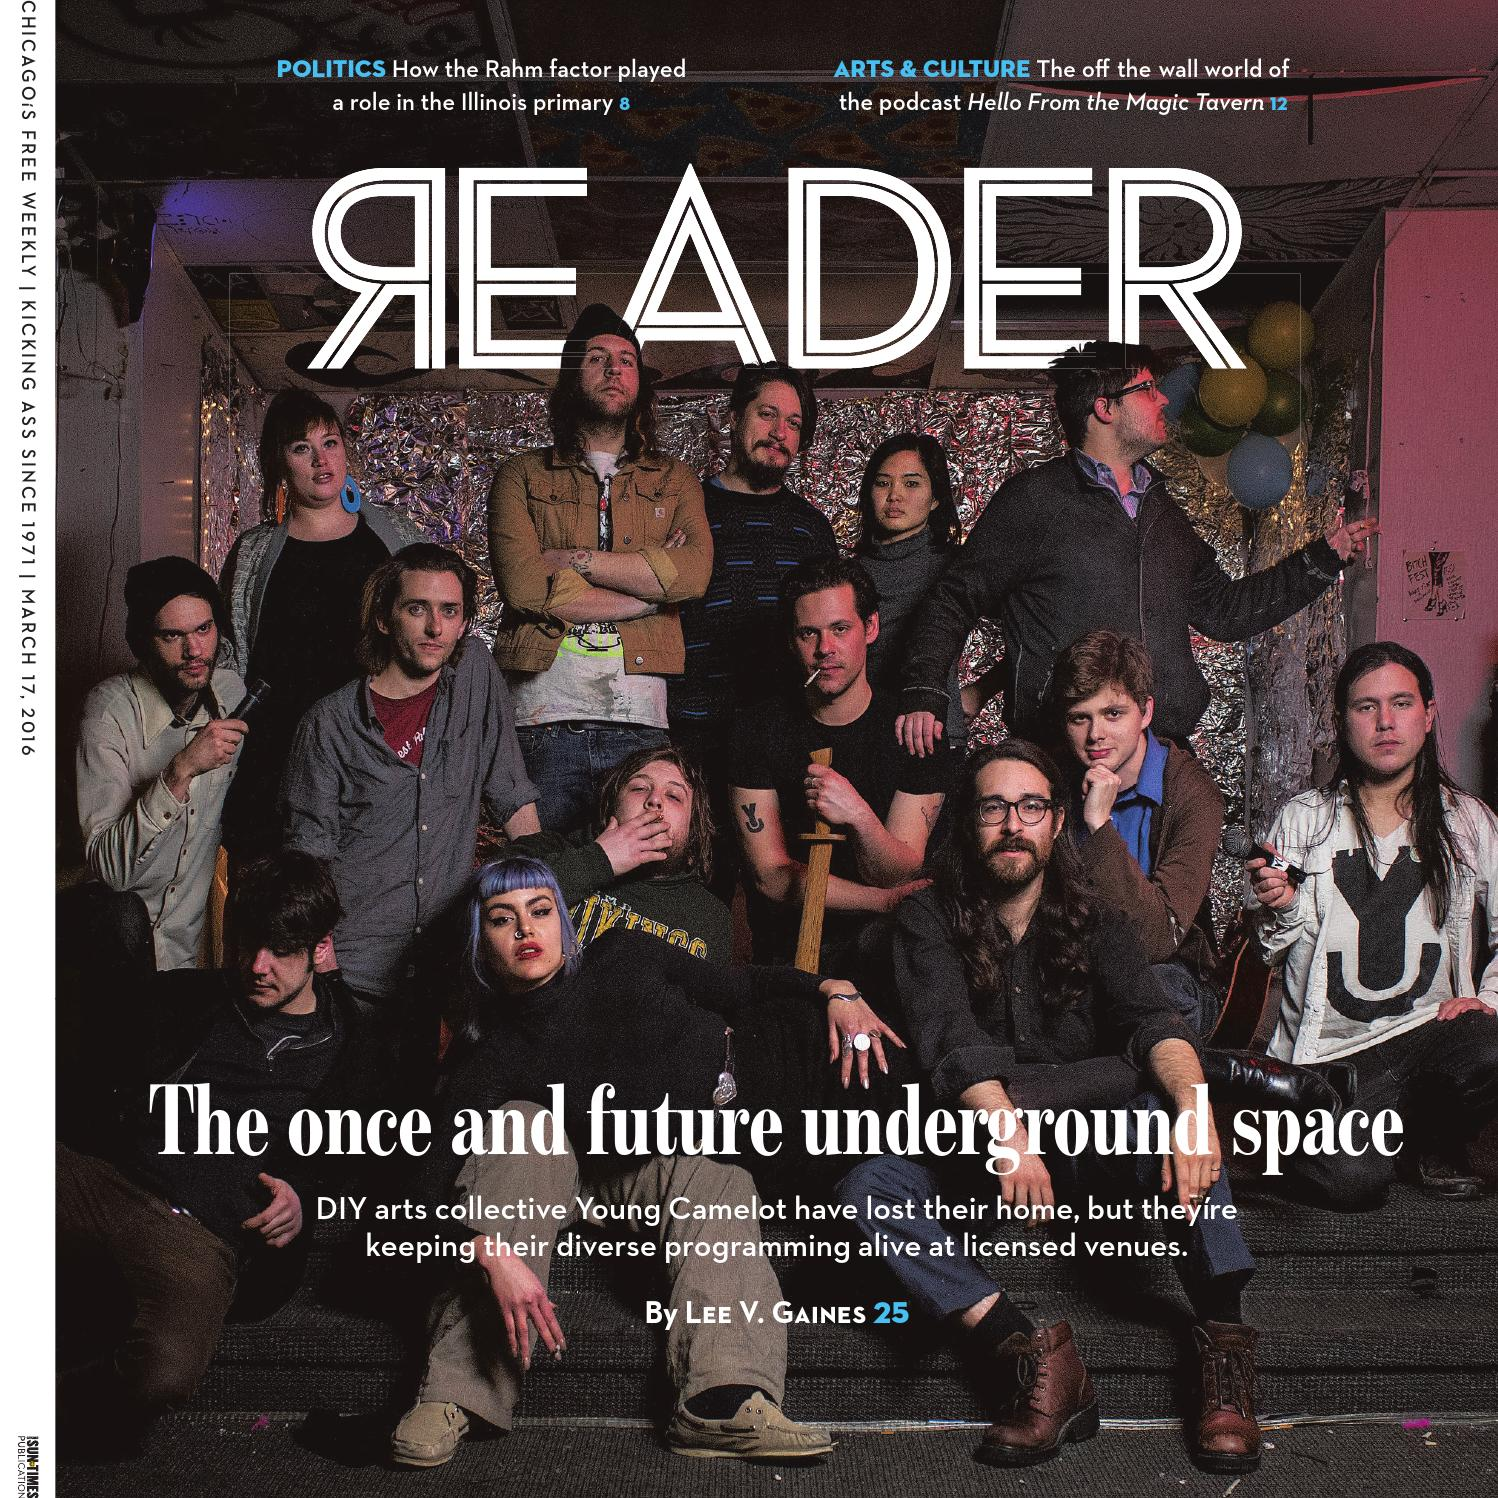 Chicago Reader print issue of March 17 2016 Volume 45 Number 23